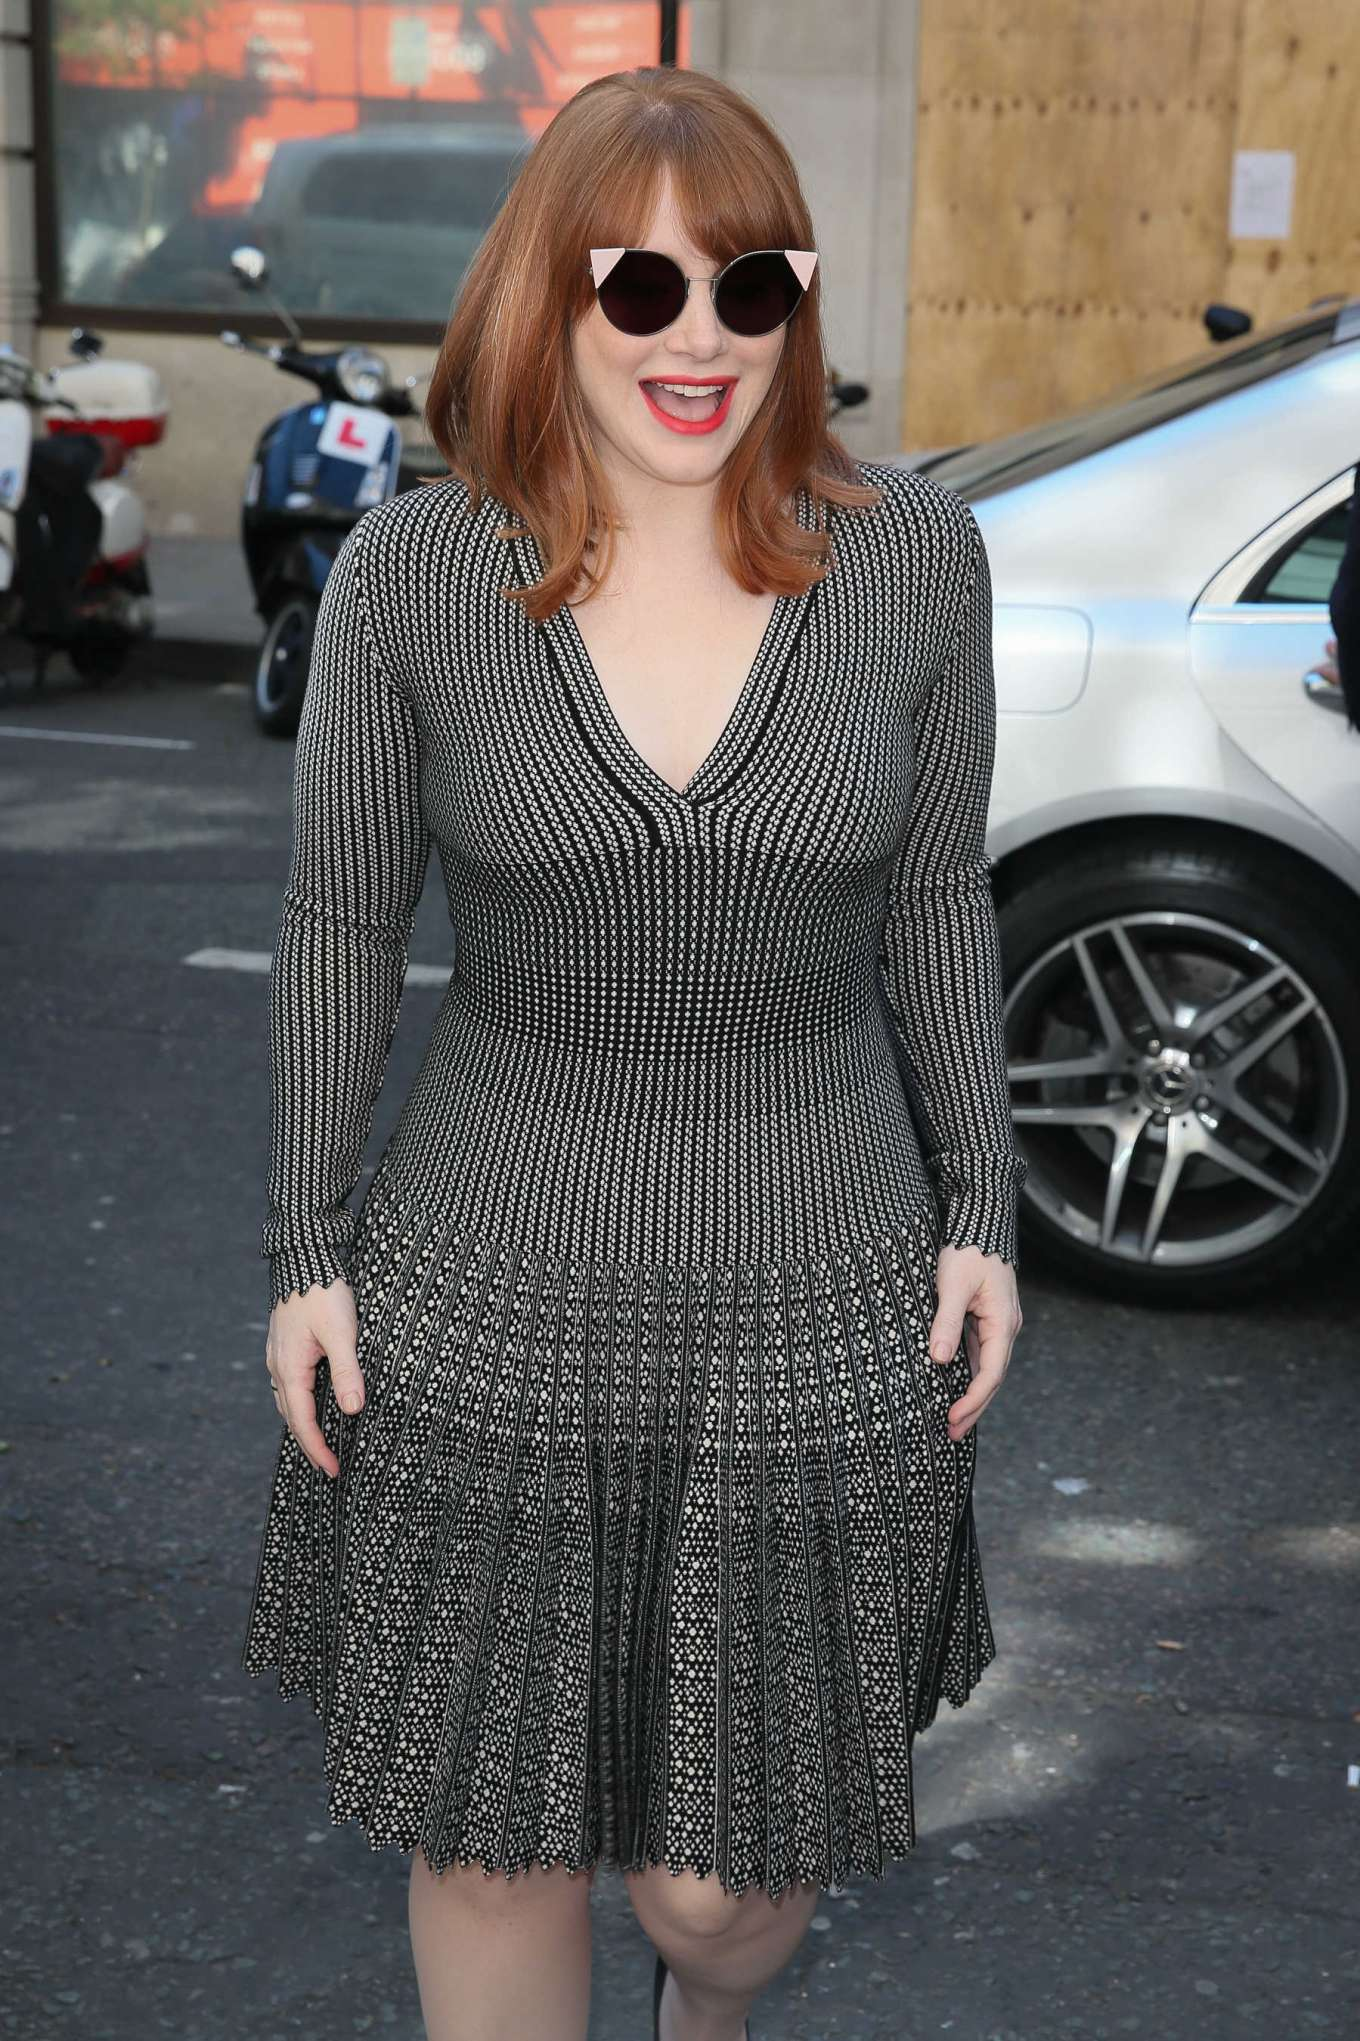 Bryce Dallas Howard 2019 : Bryce Dallas Howard: Out and about in London-19